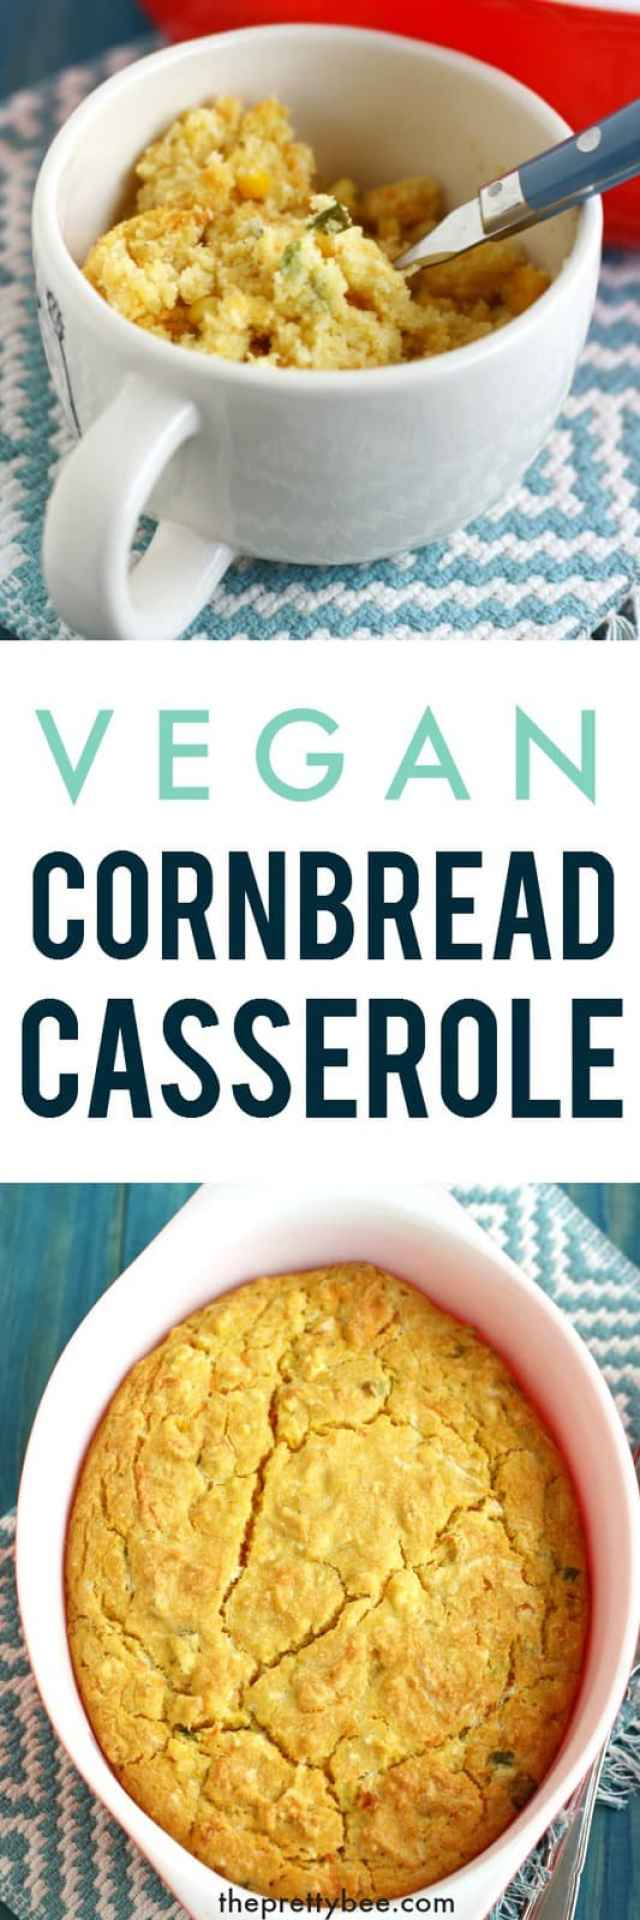 Perfectly delicious vegan cornbread casserole is a must for your next holiday meal or potluck dinner!